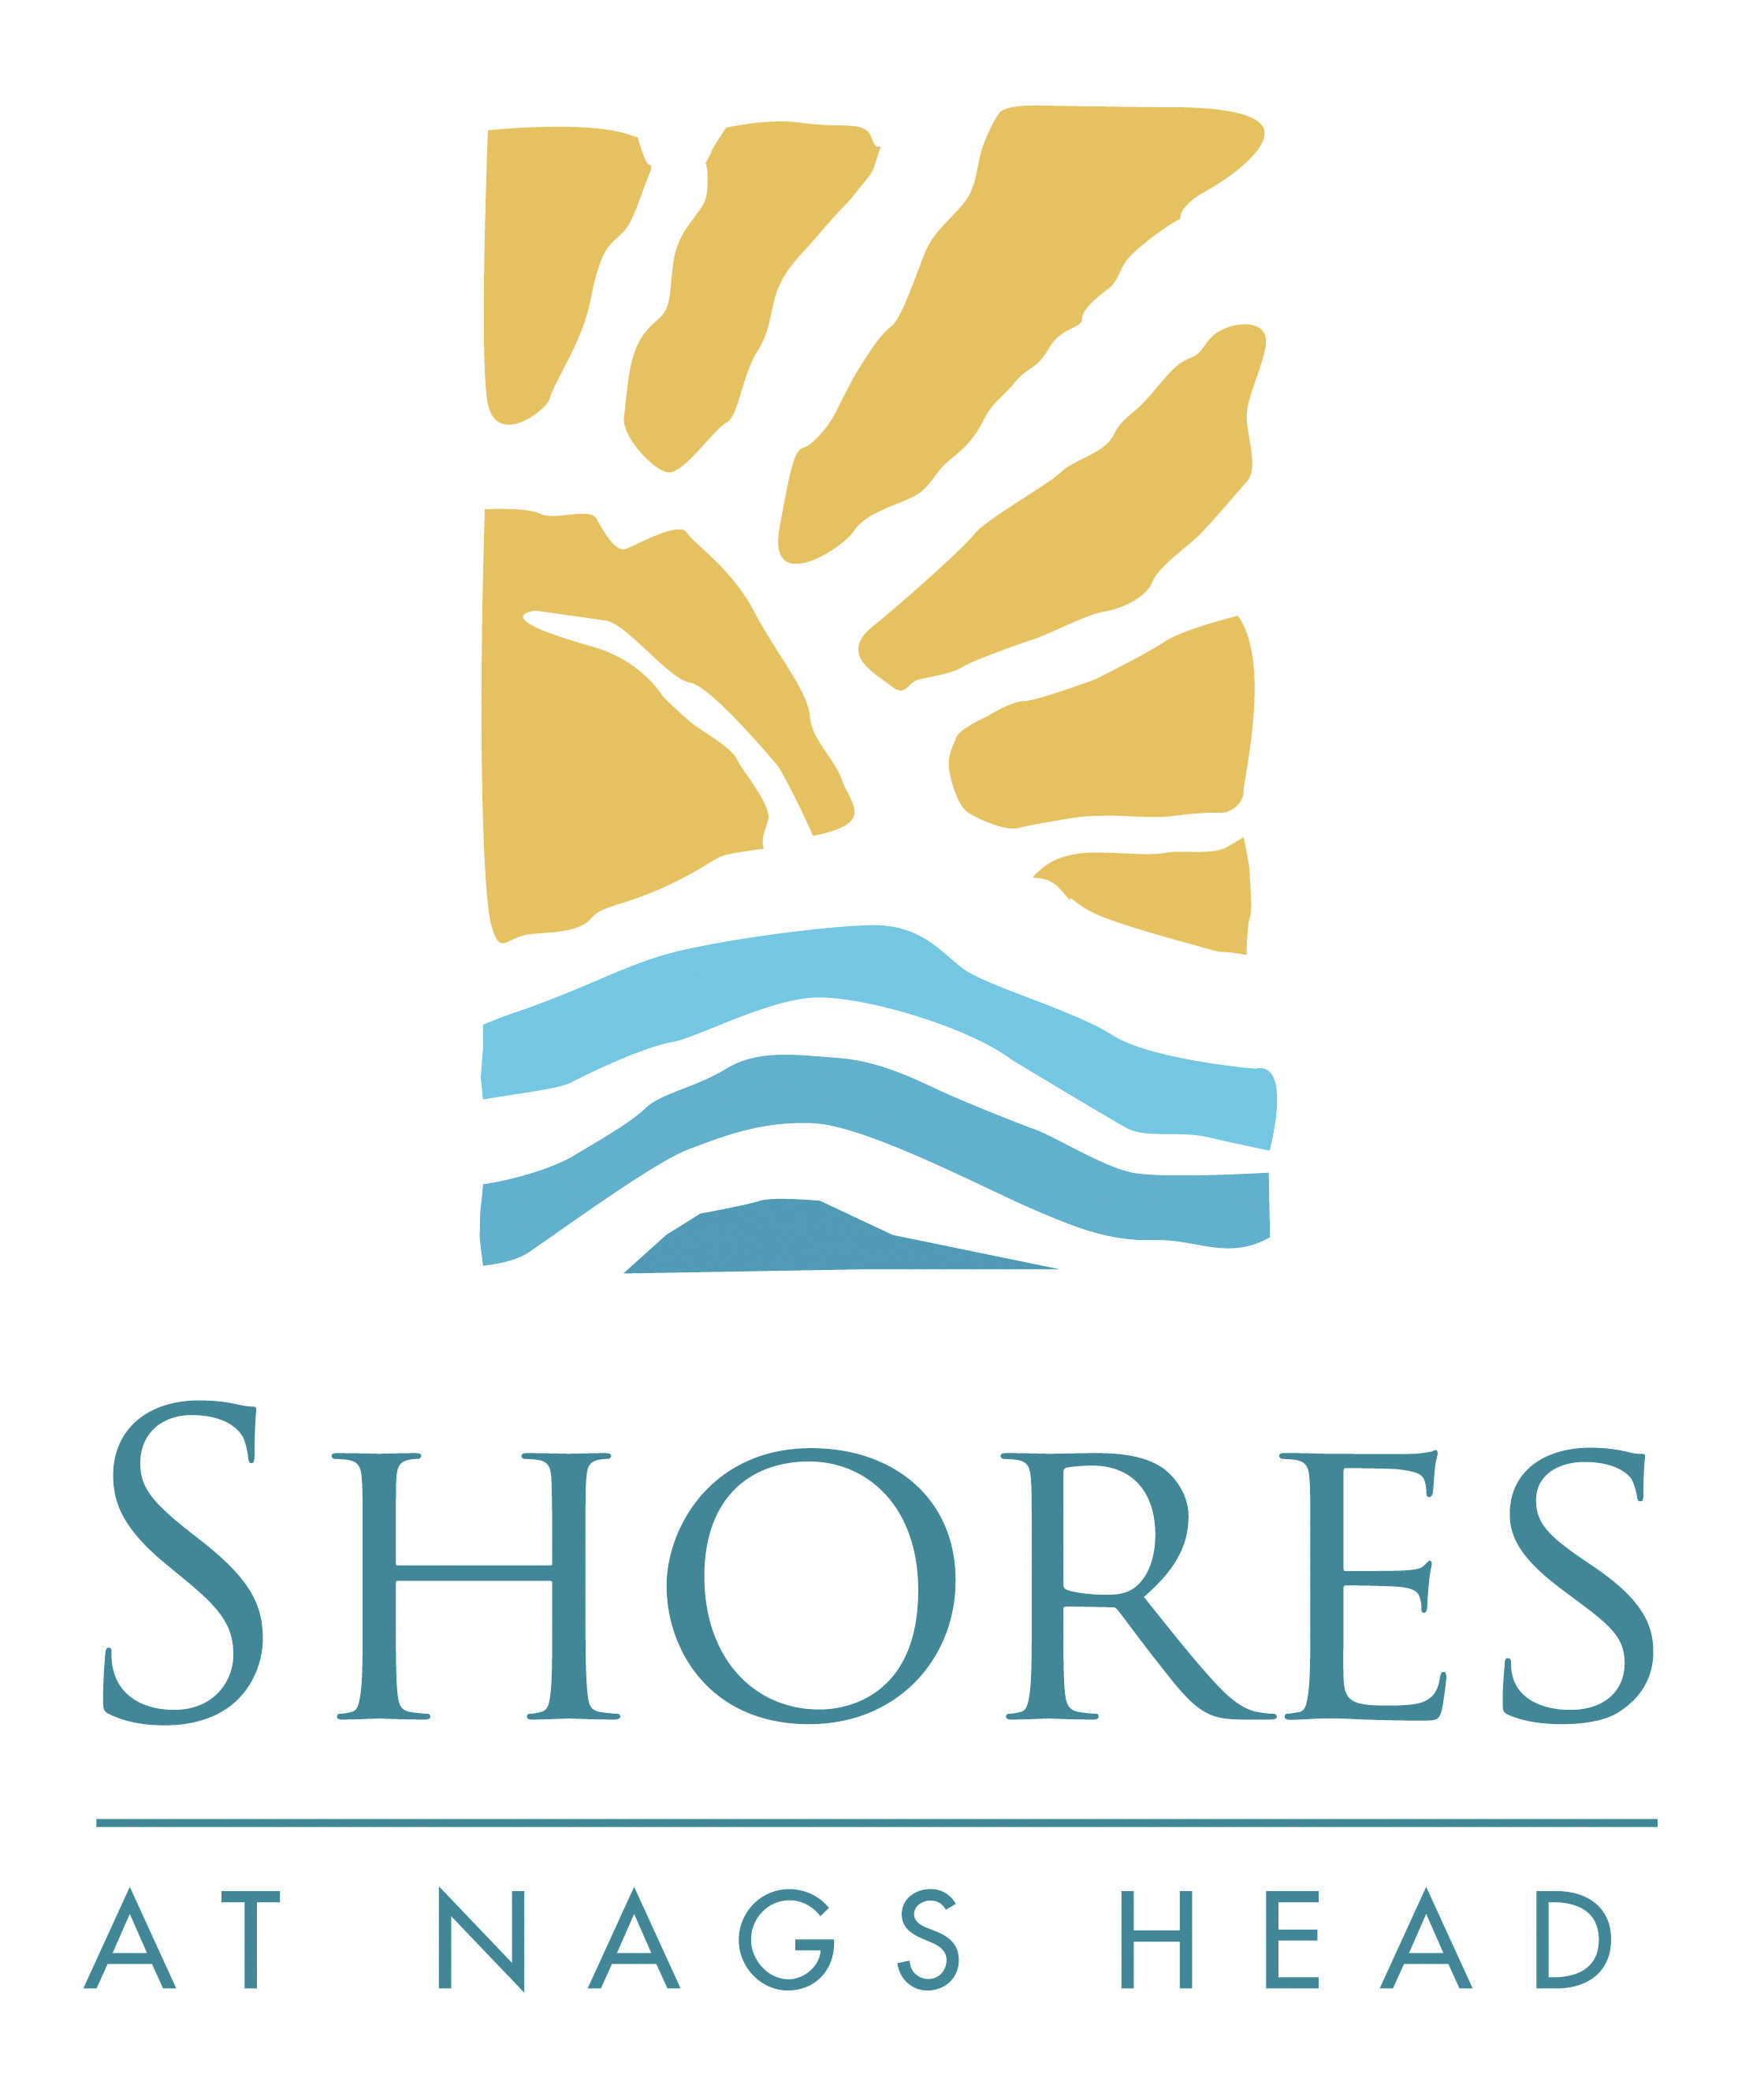 The Shores at Nags Head by Resort Realty logo